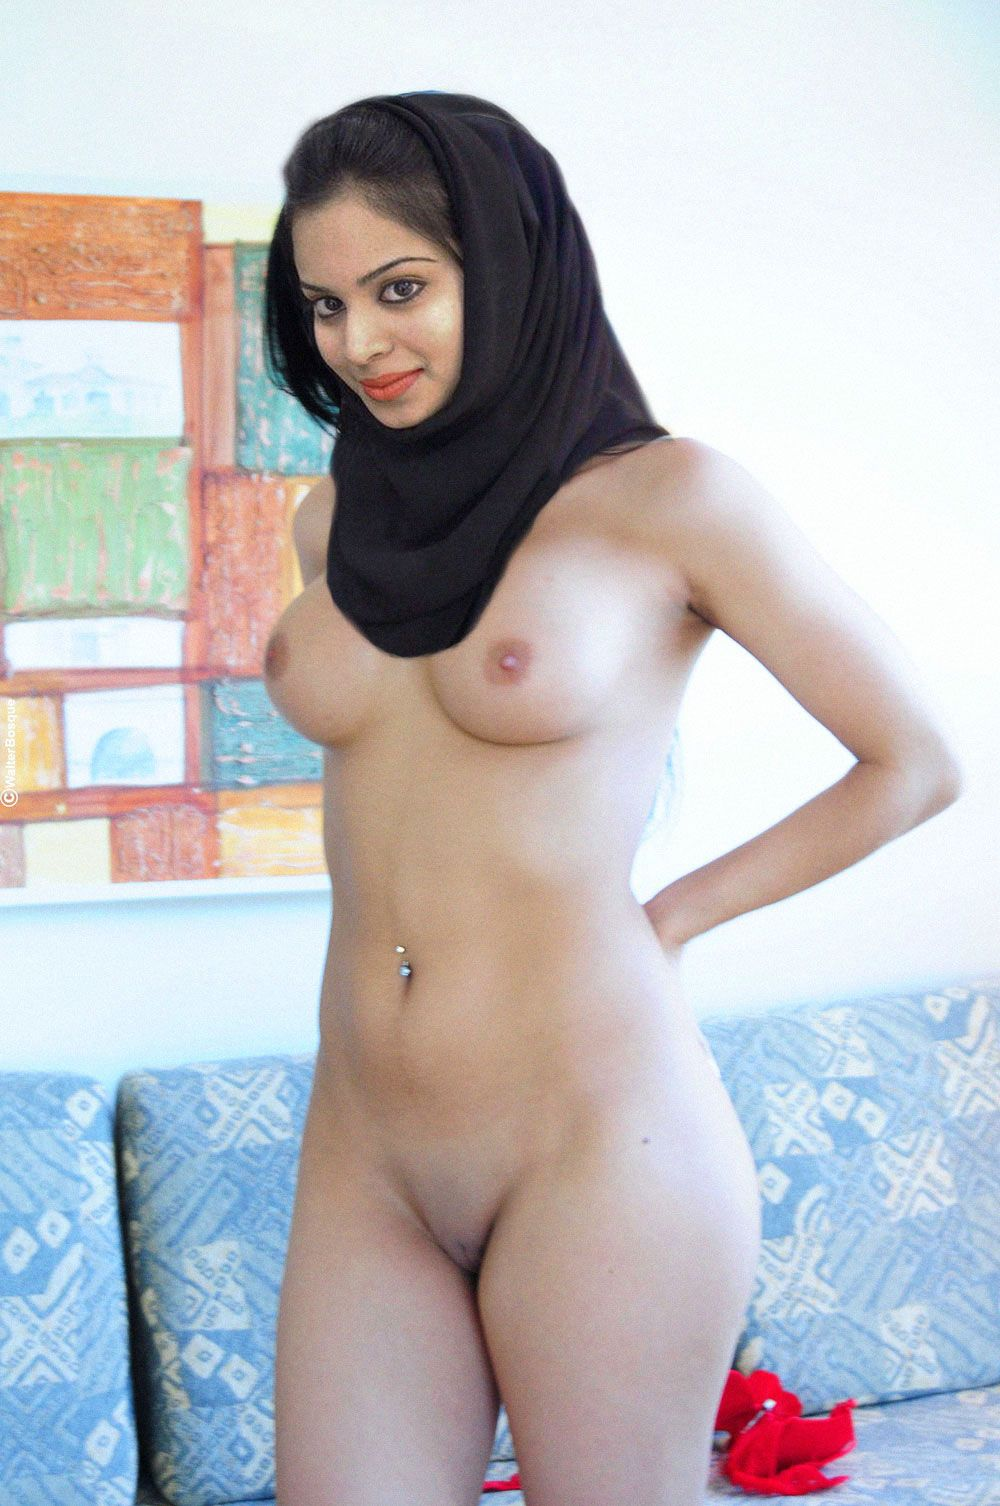 nude muslim women in the hijab